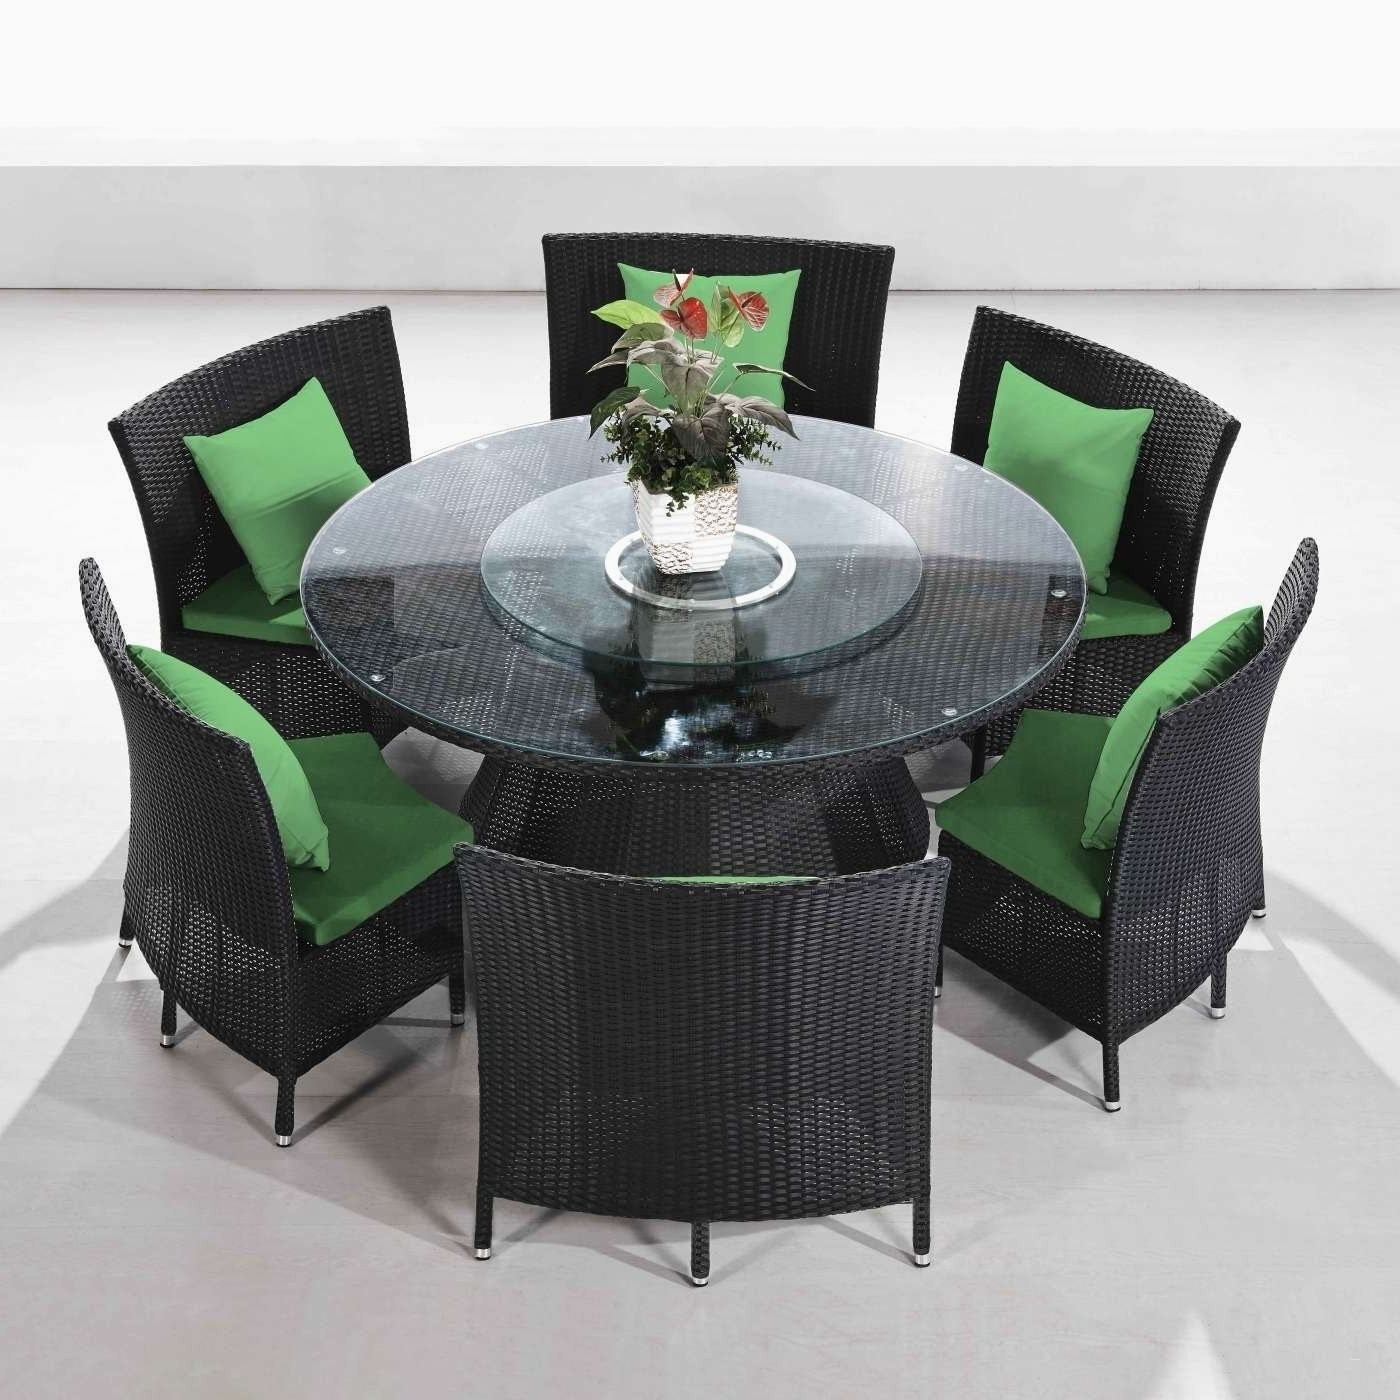 Newest Round Dining Table For 6 Elegant 6 Seat Round Dining Table Lovely Throughout 6 Seat Round Dining Tables (View 19 of 25)